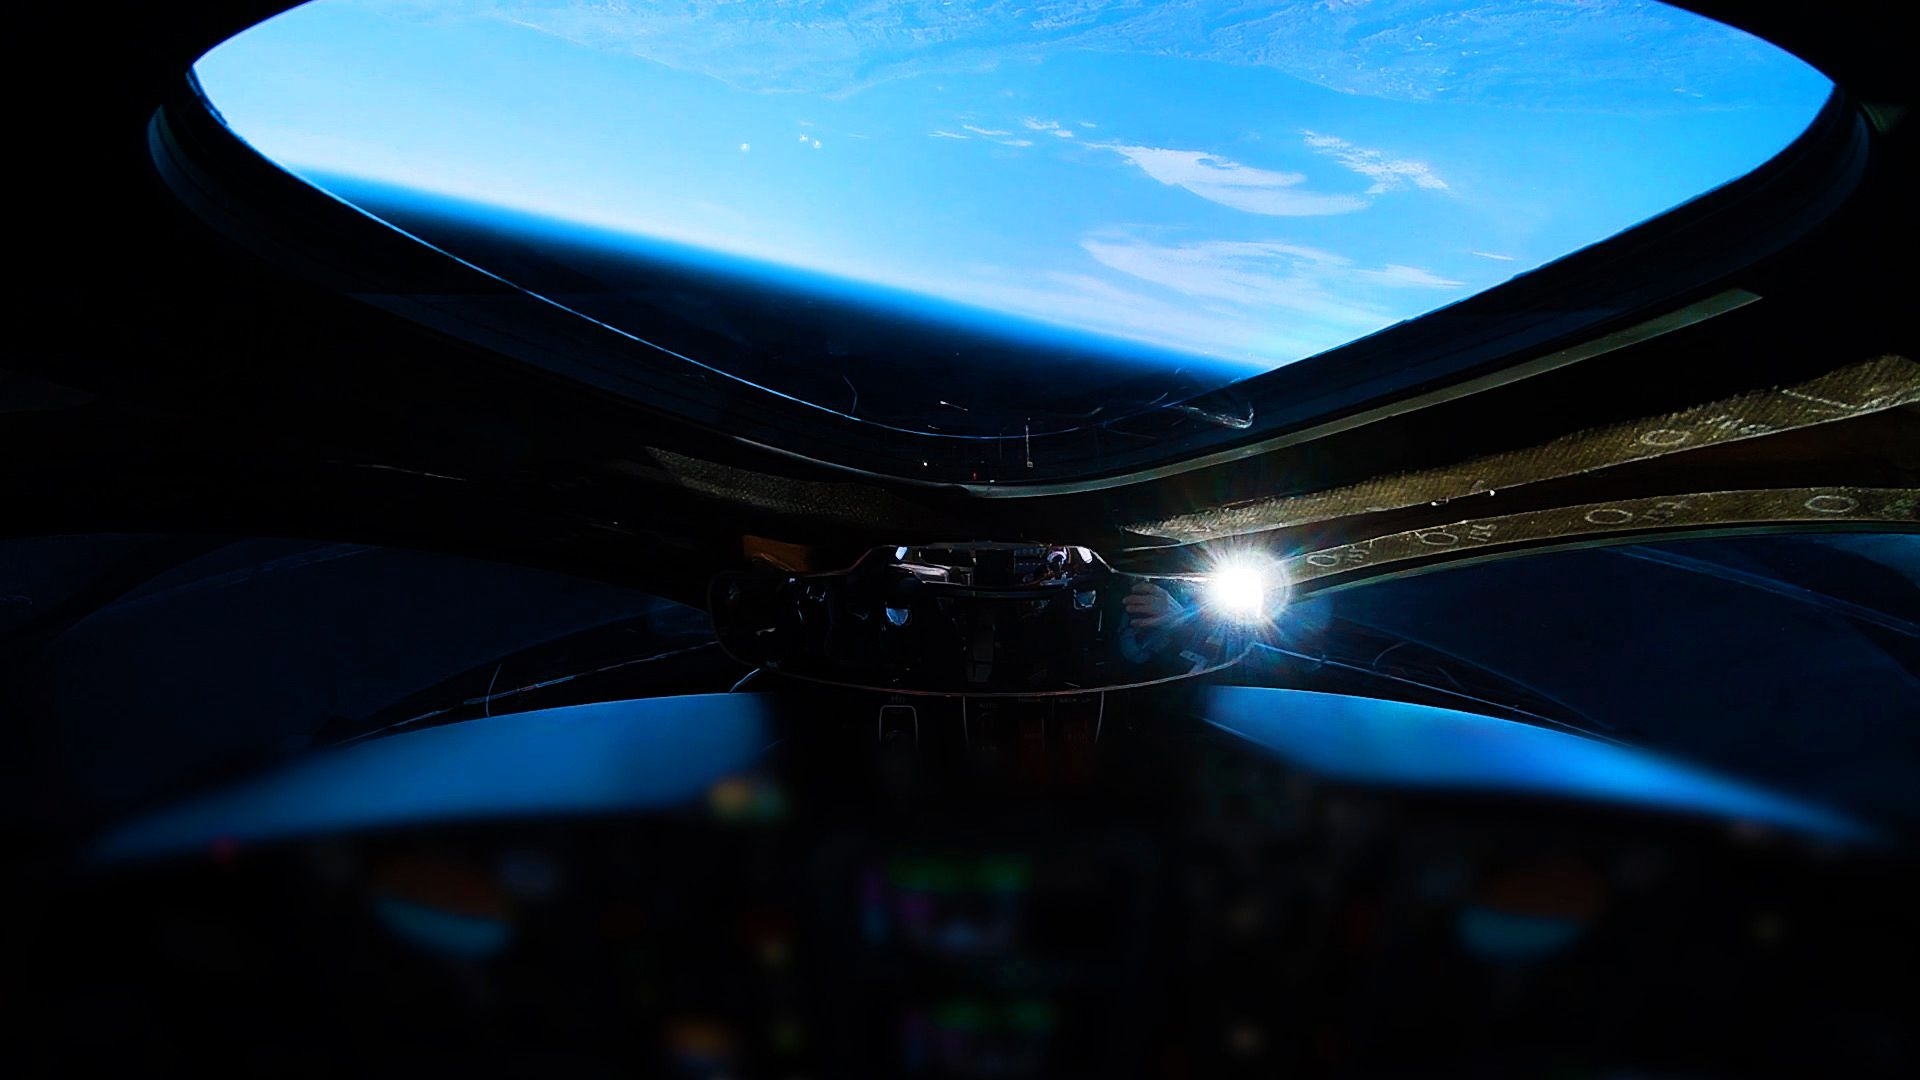 Image from the flight deck of Virgin Galactic's spaceship during the test flight